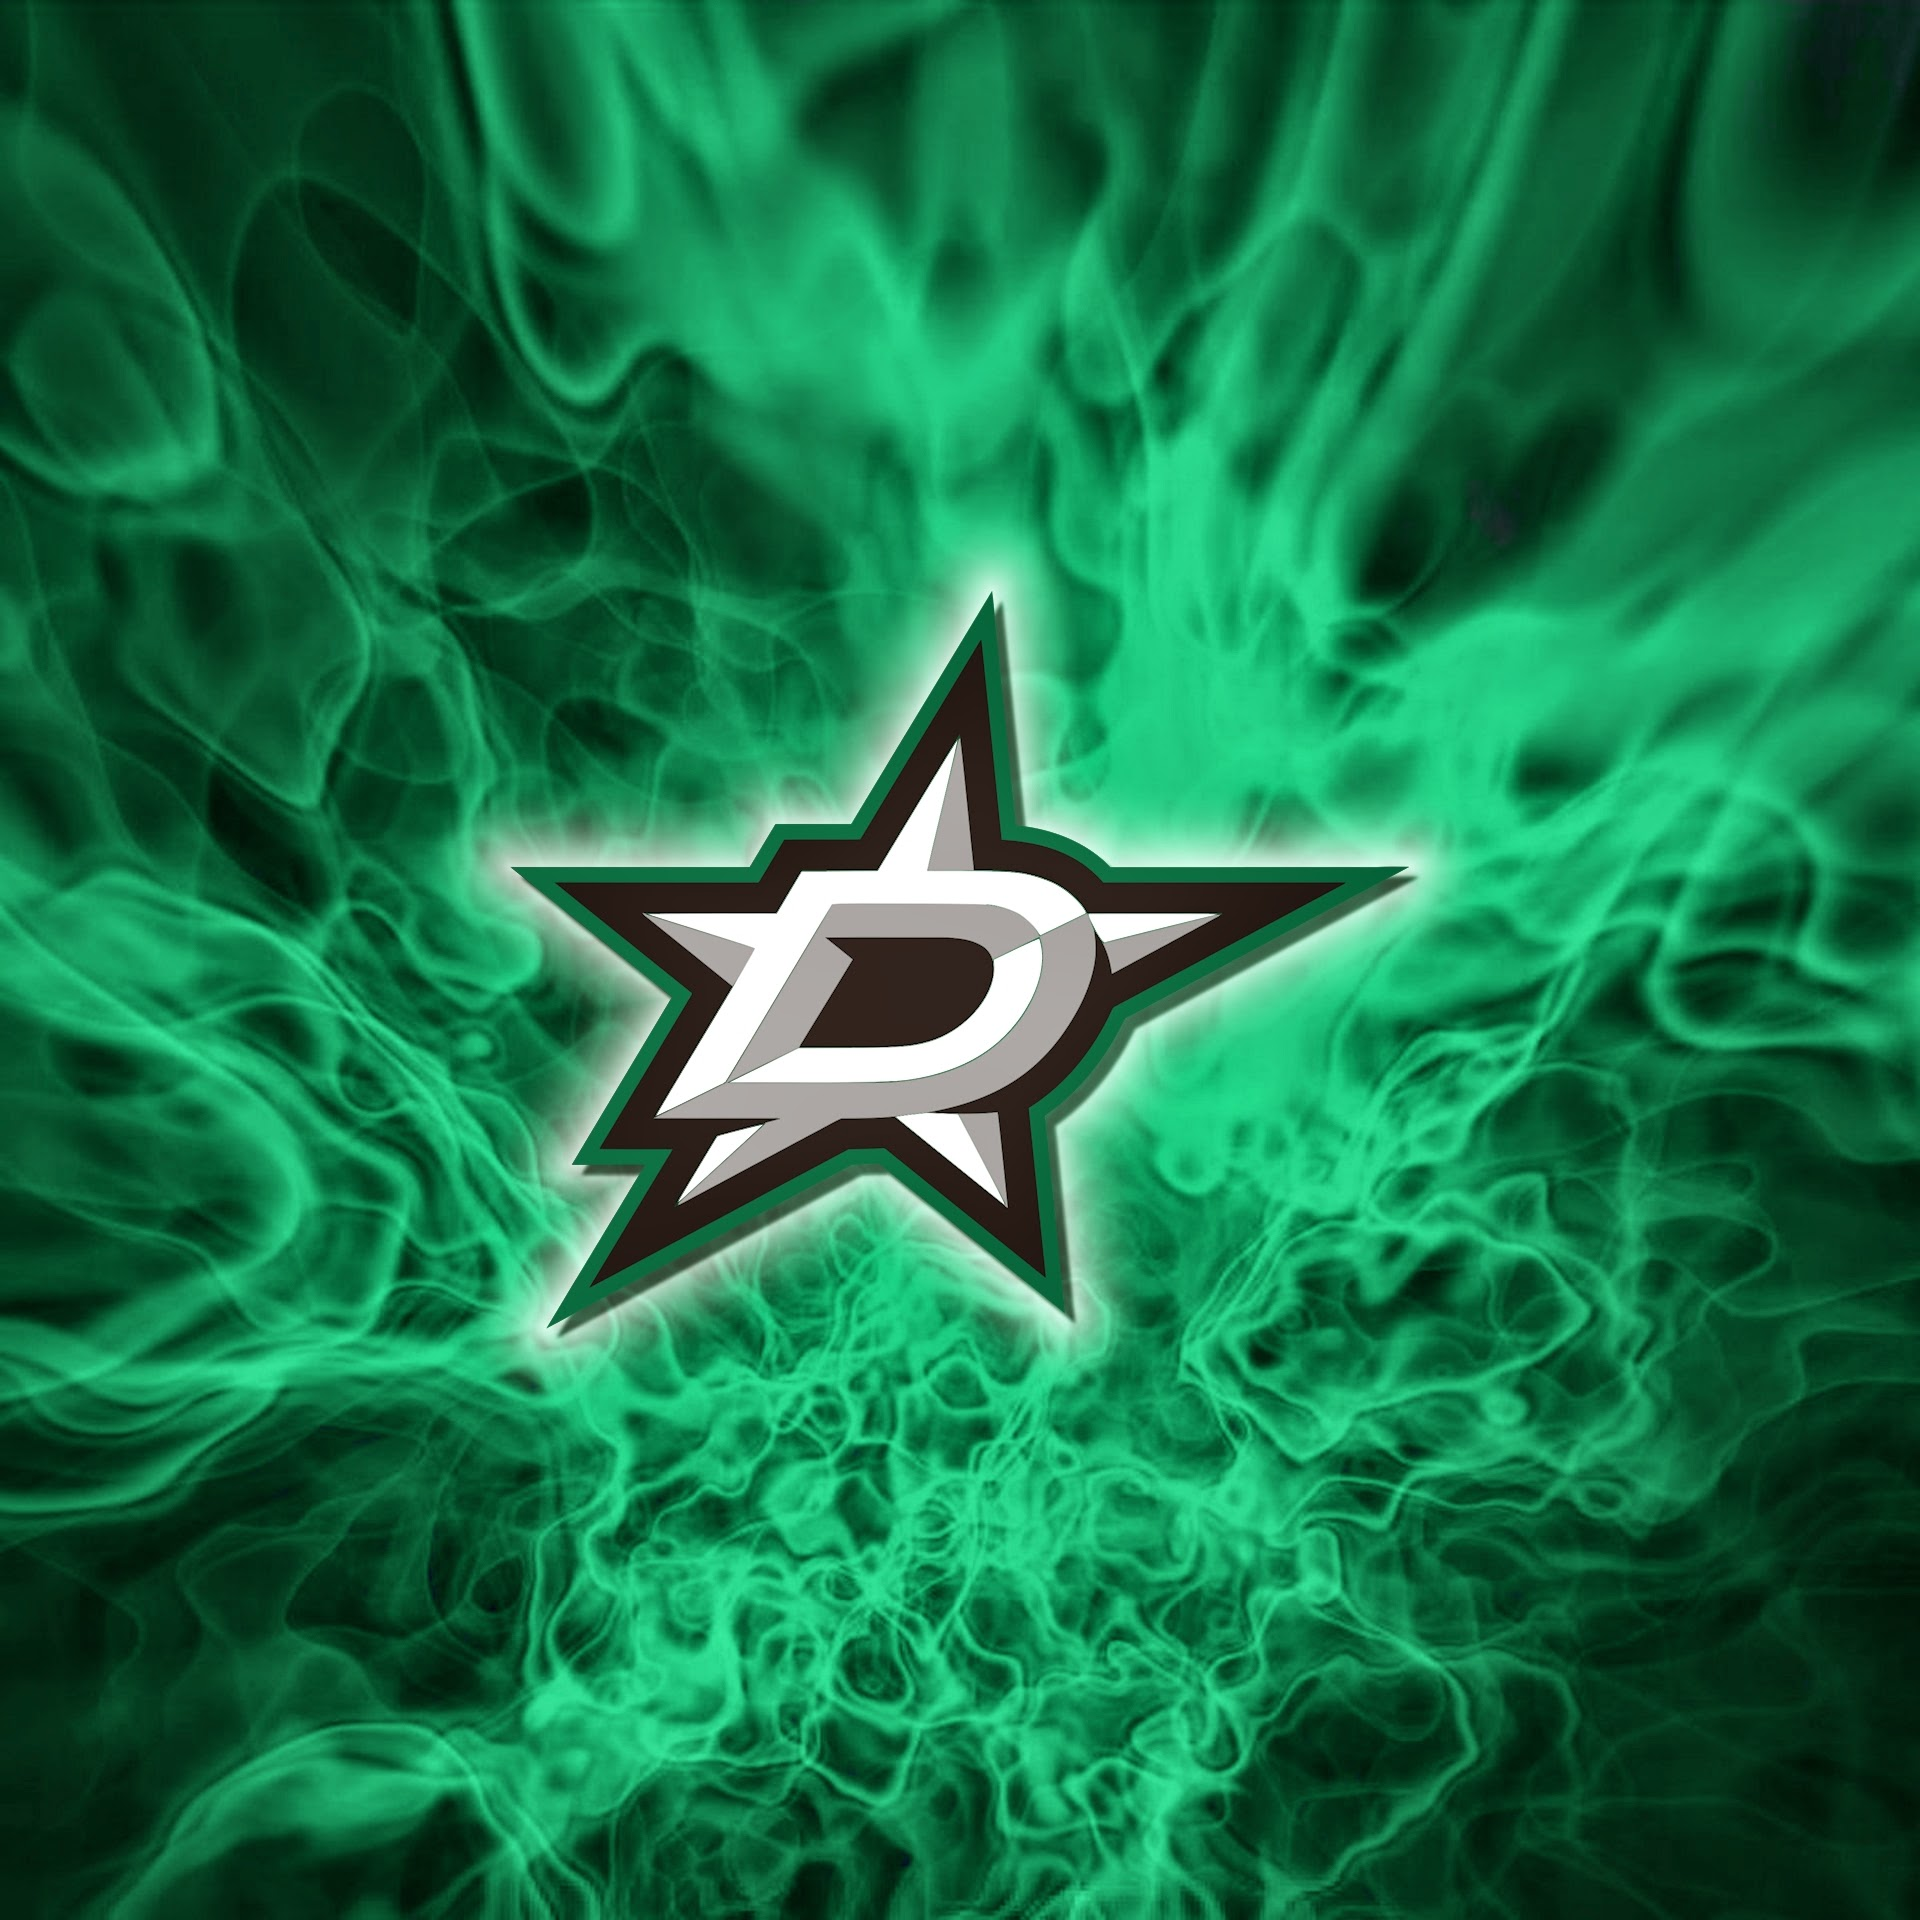 Flames Wallpaper by fatboy97 - Page 26 - Android Forums at ...Dallas Stars